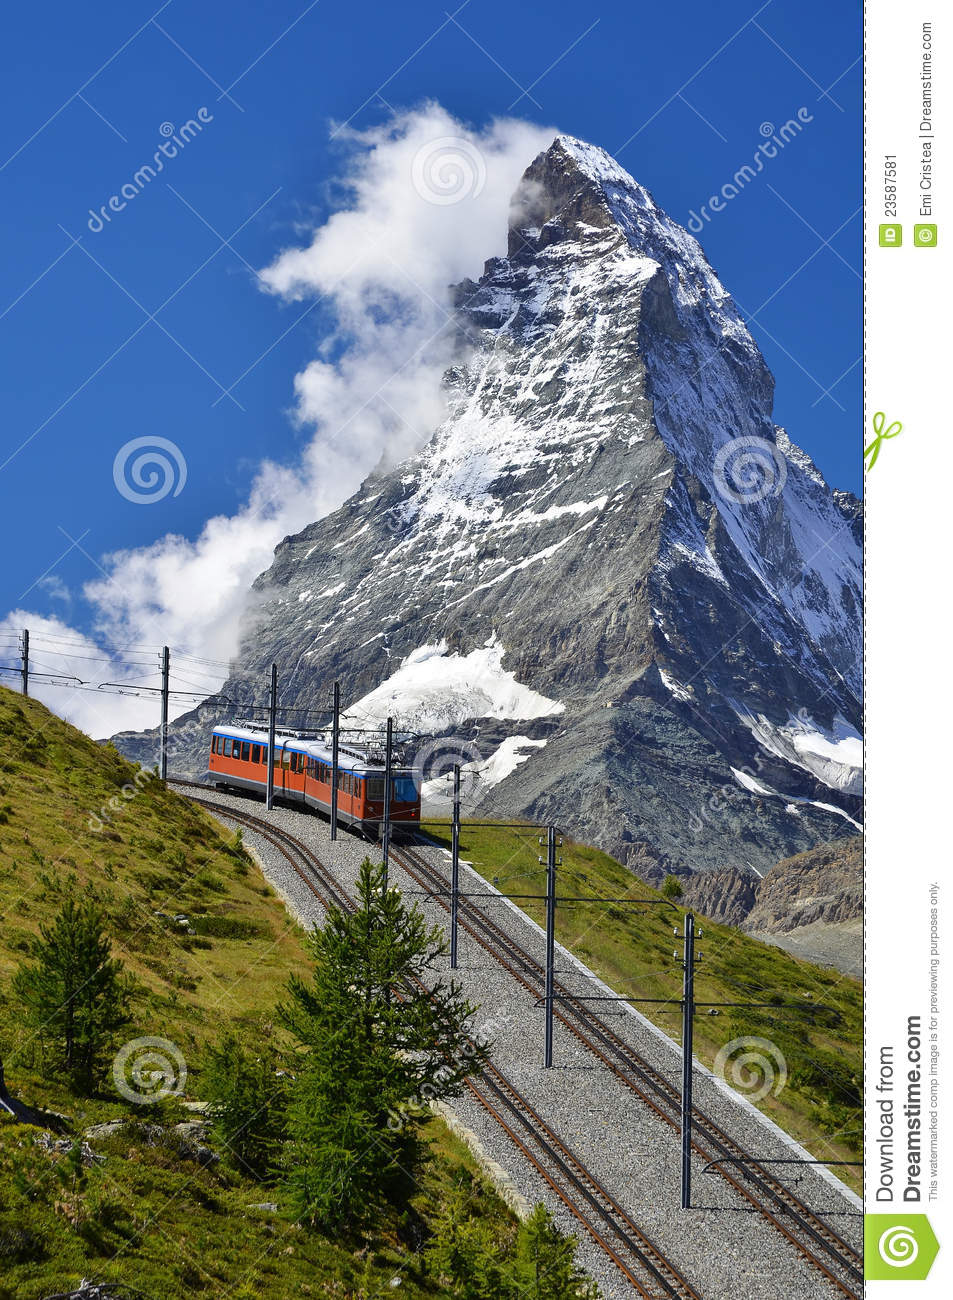 Train To Matterhorn, Zermatt Railway To Gornergrat Stock Image.